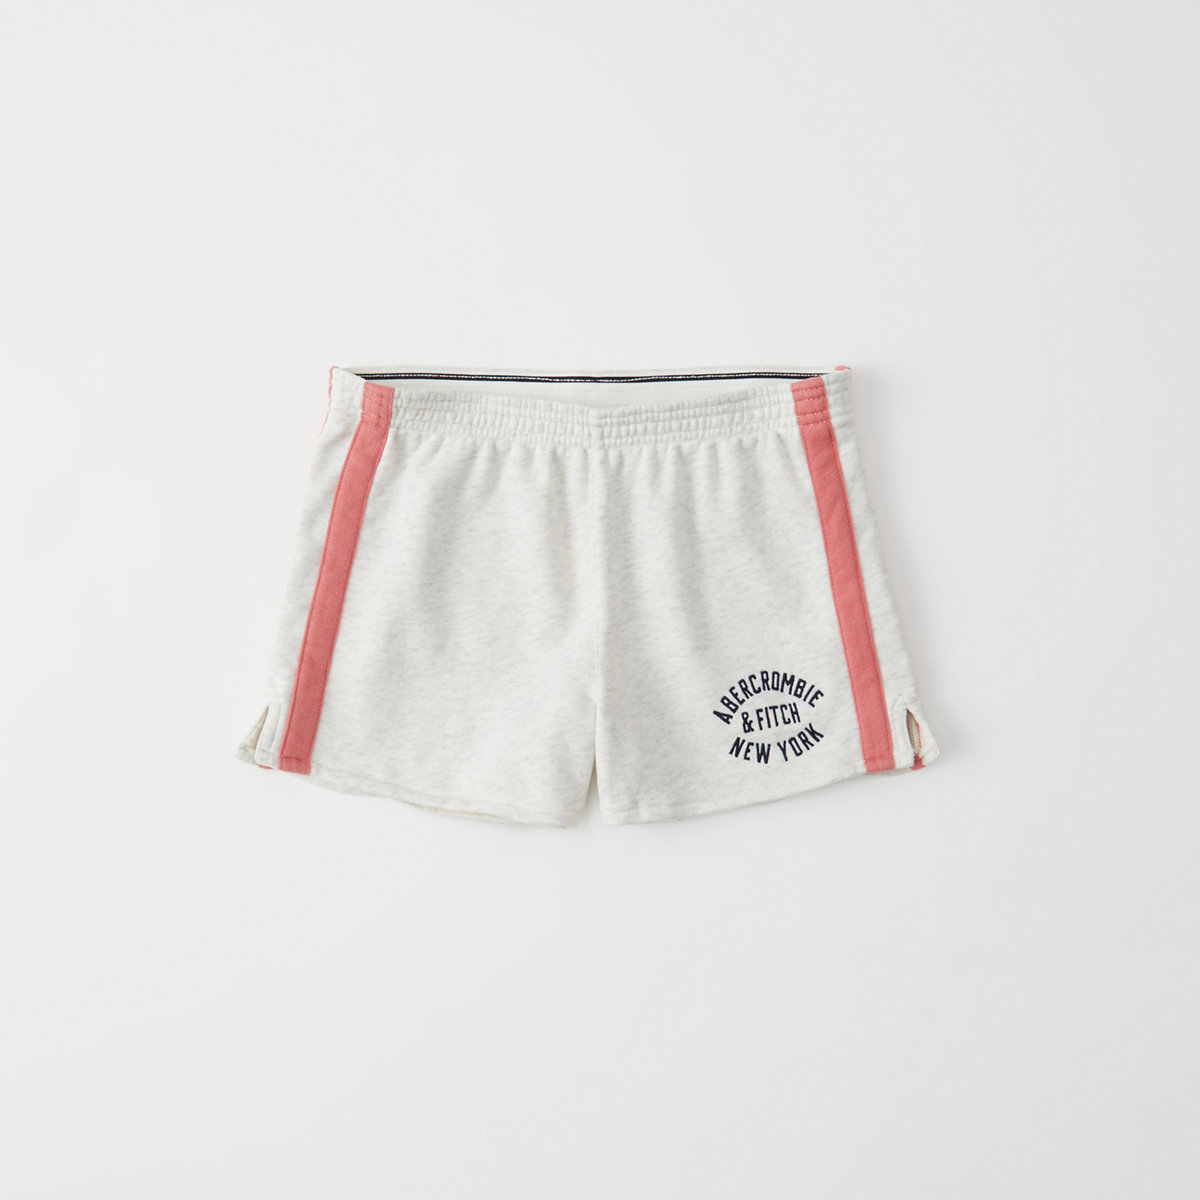 Abercrombie varsity logo shorts with sport stripe.